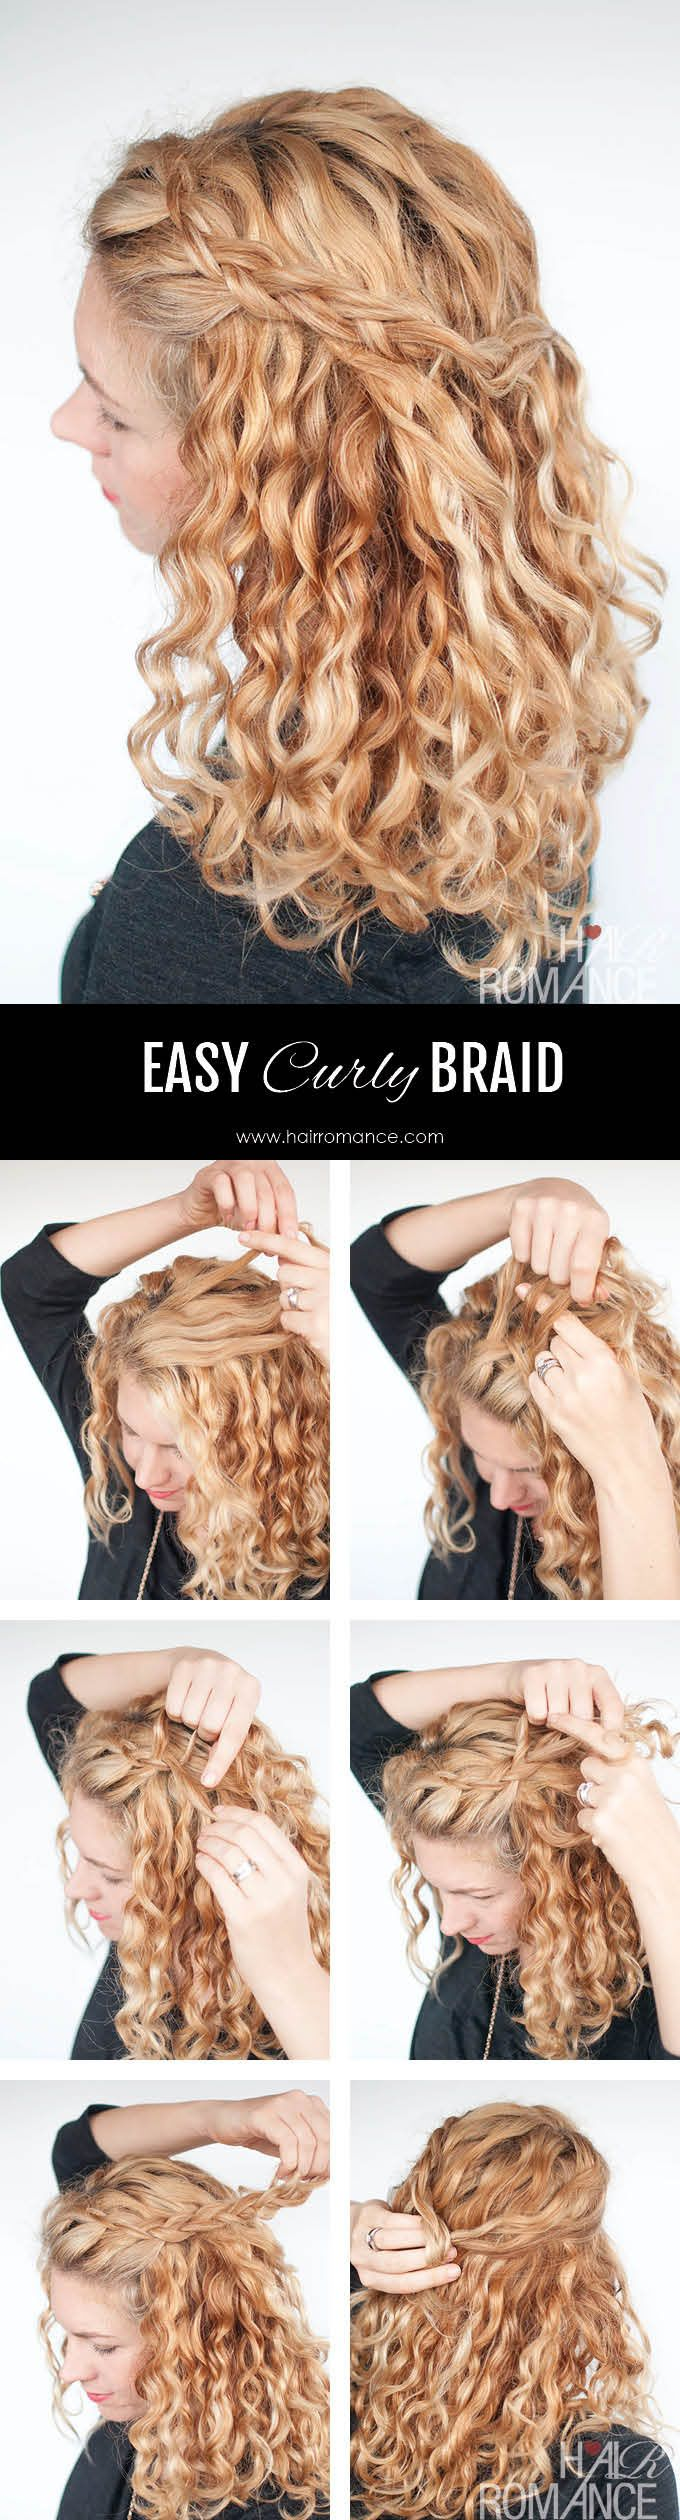 Hair Romance - Easy half up braid tutorial in curly hair 4